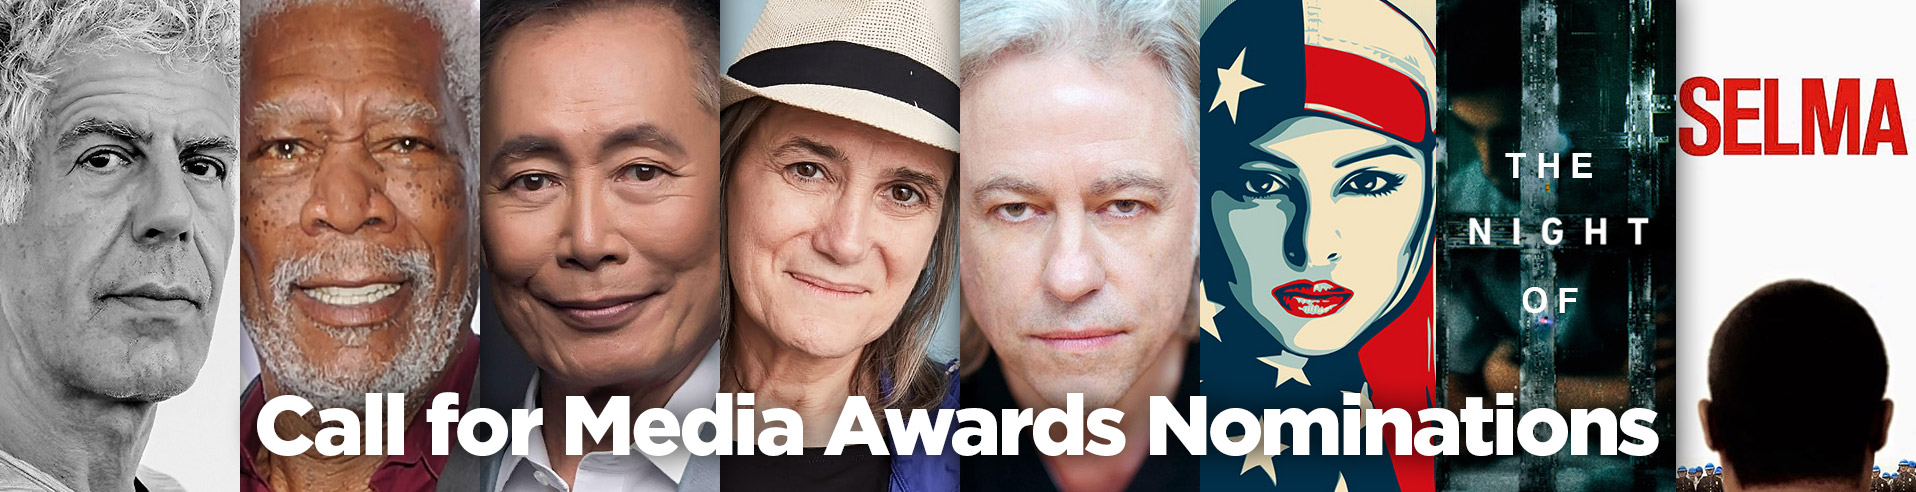 Call for Nominations for 2019 Media Awards